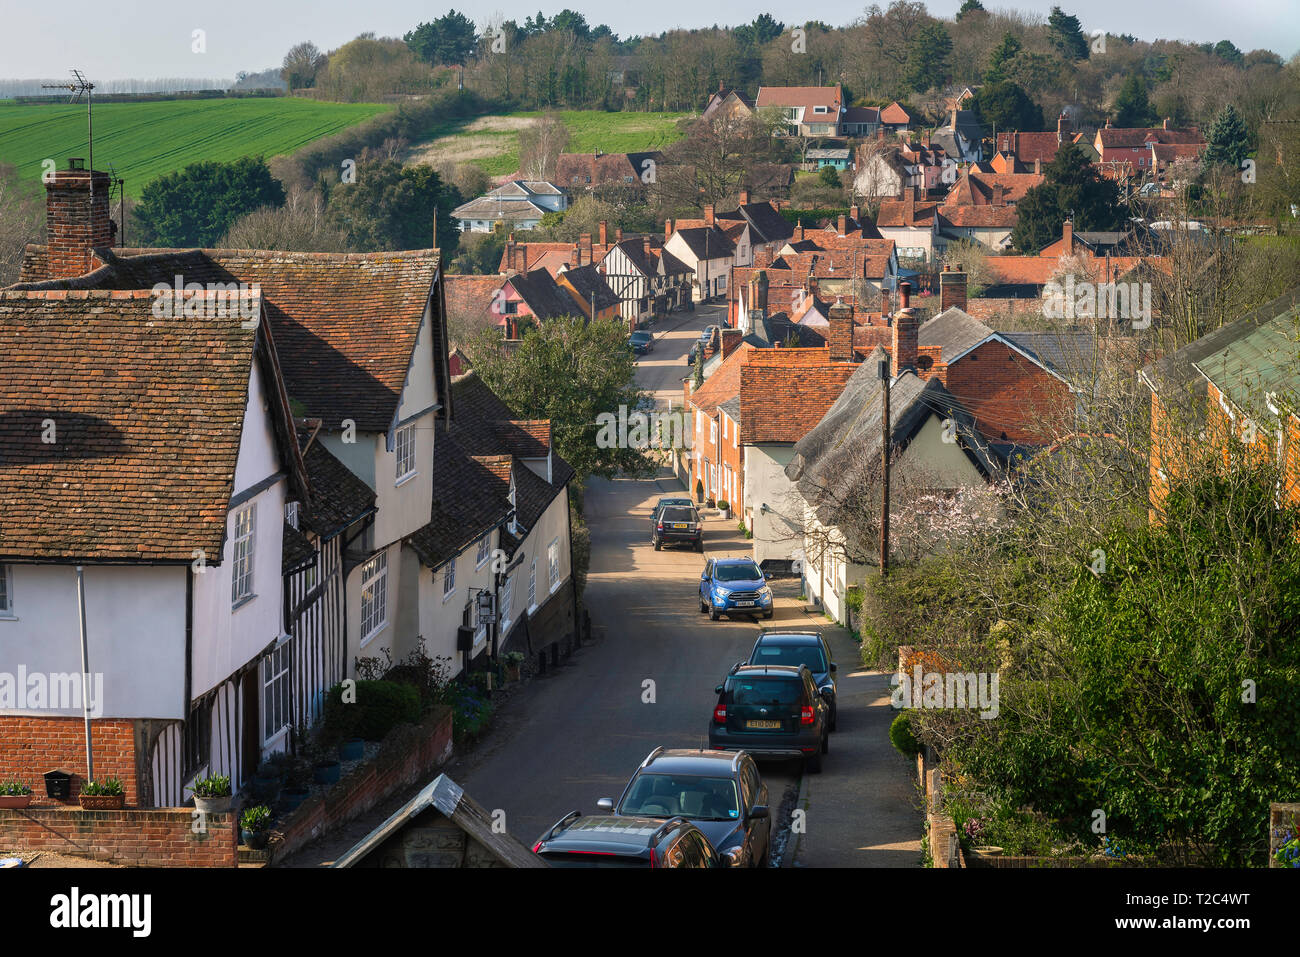 Kersey Suffolk, view of the Suffolk village of Kersey whose main road - The Street - is lined with well preserved medieval houses, Suffolk, England,UK - Stock Image